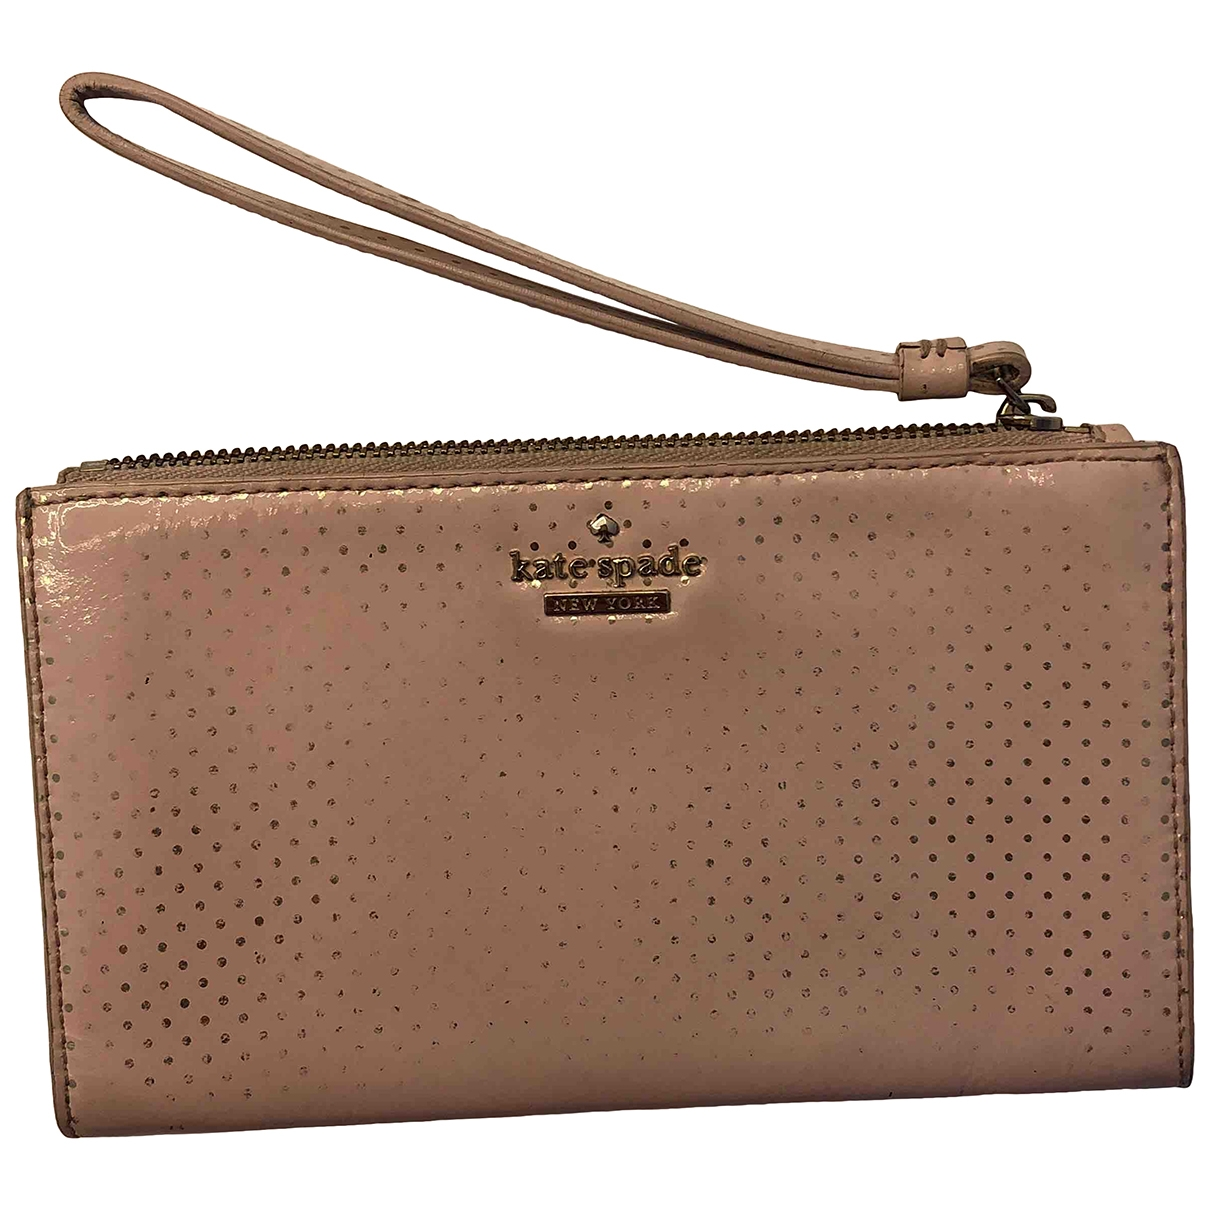 Kate Spade \N Pink Patent leather Purses, wallet & cases for Women \N